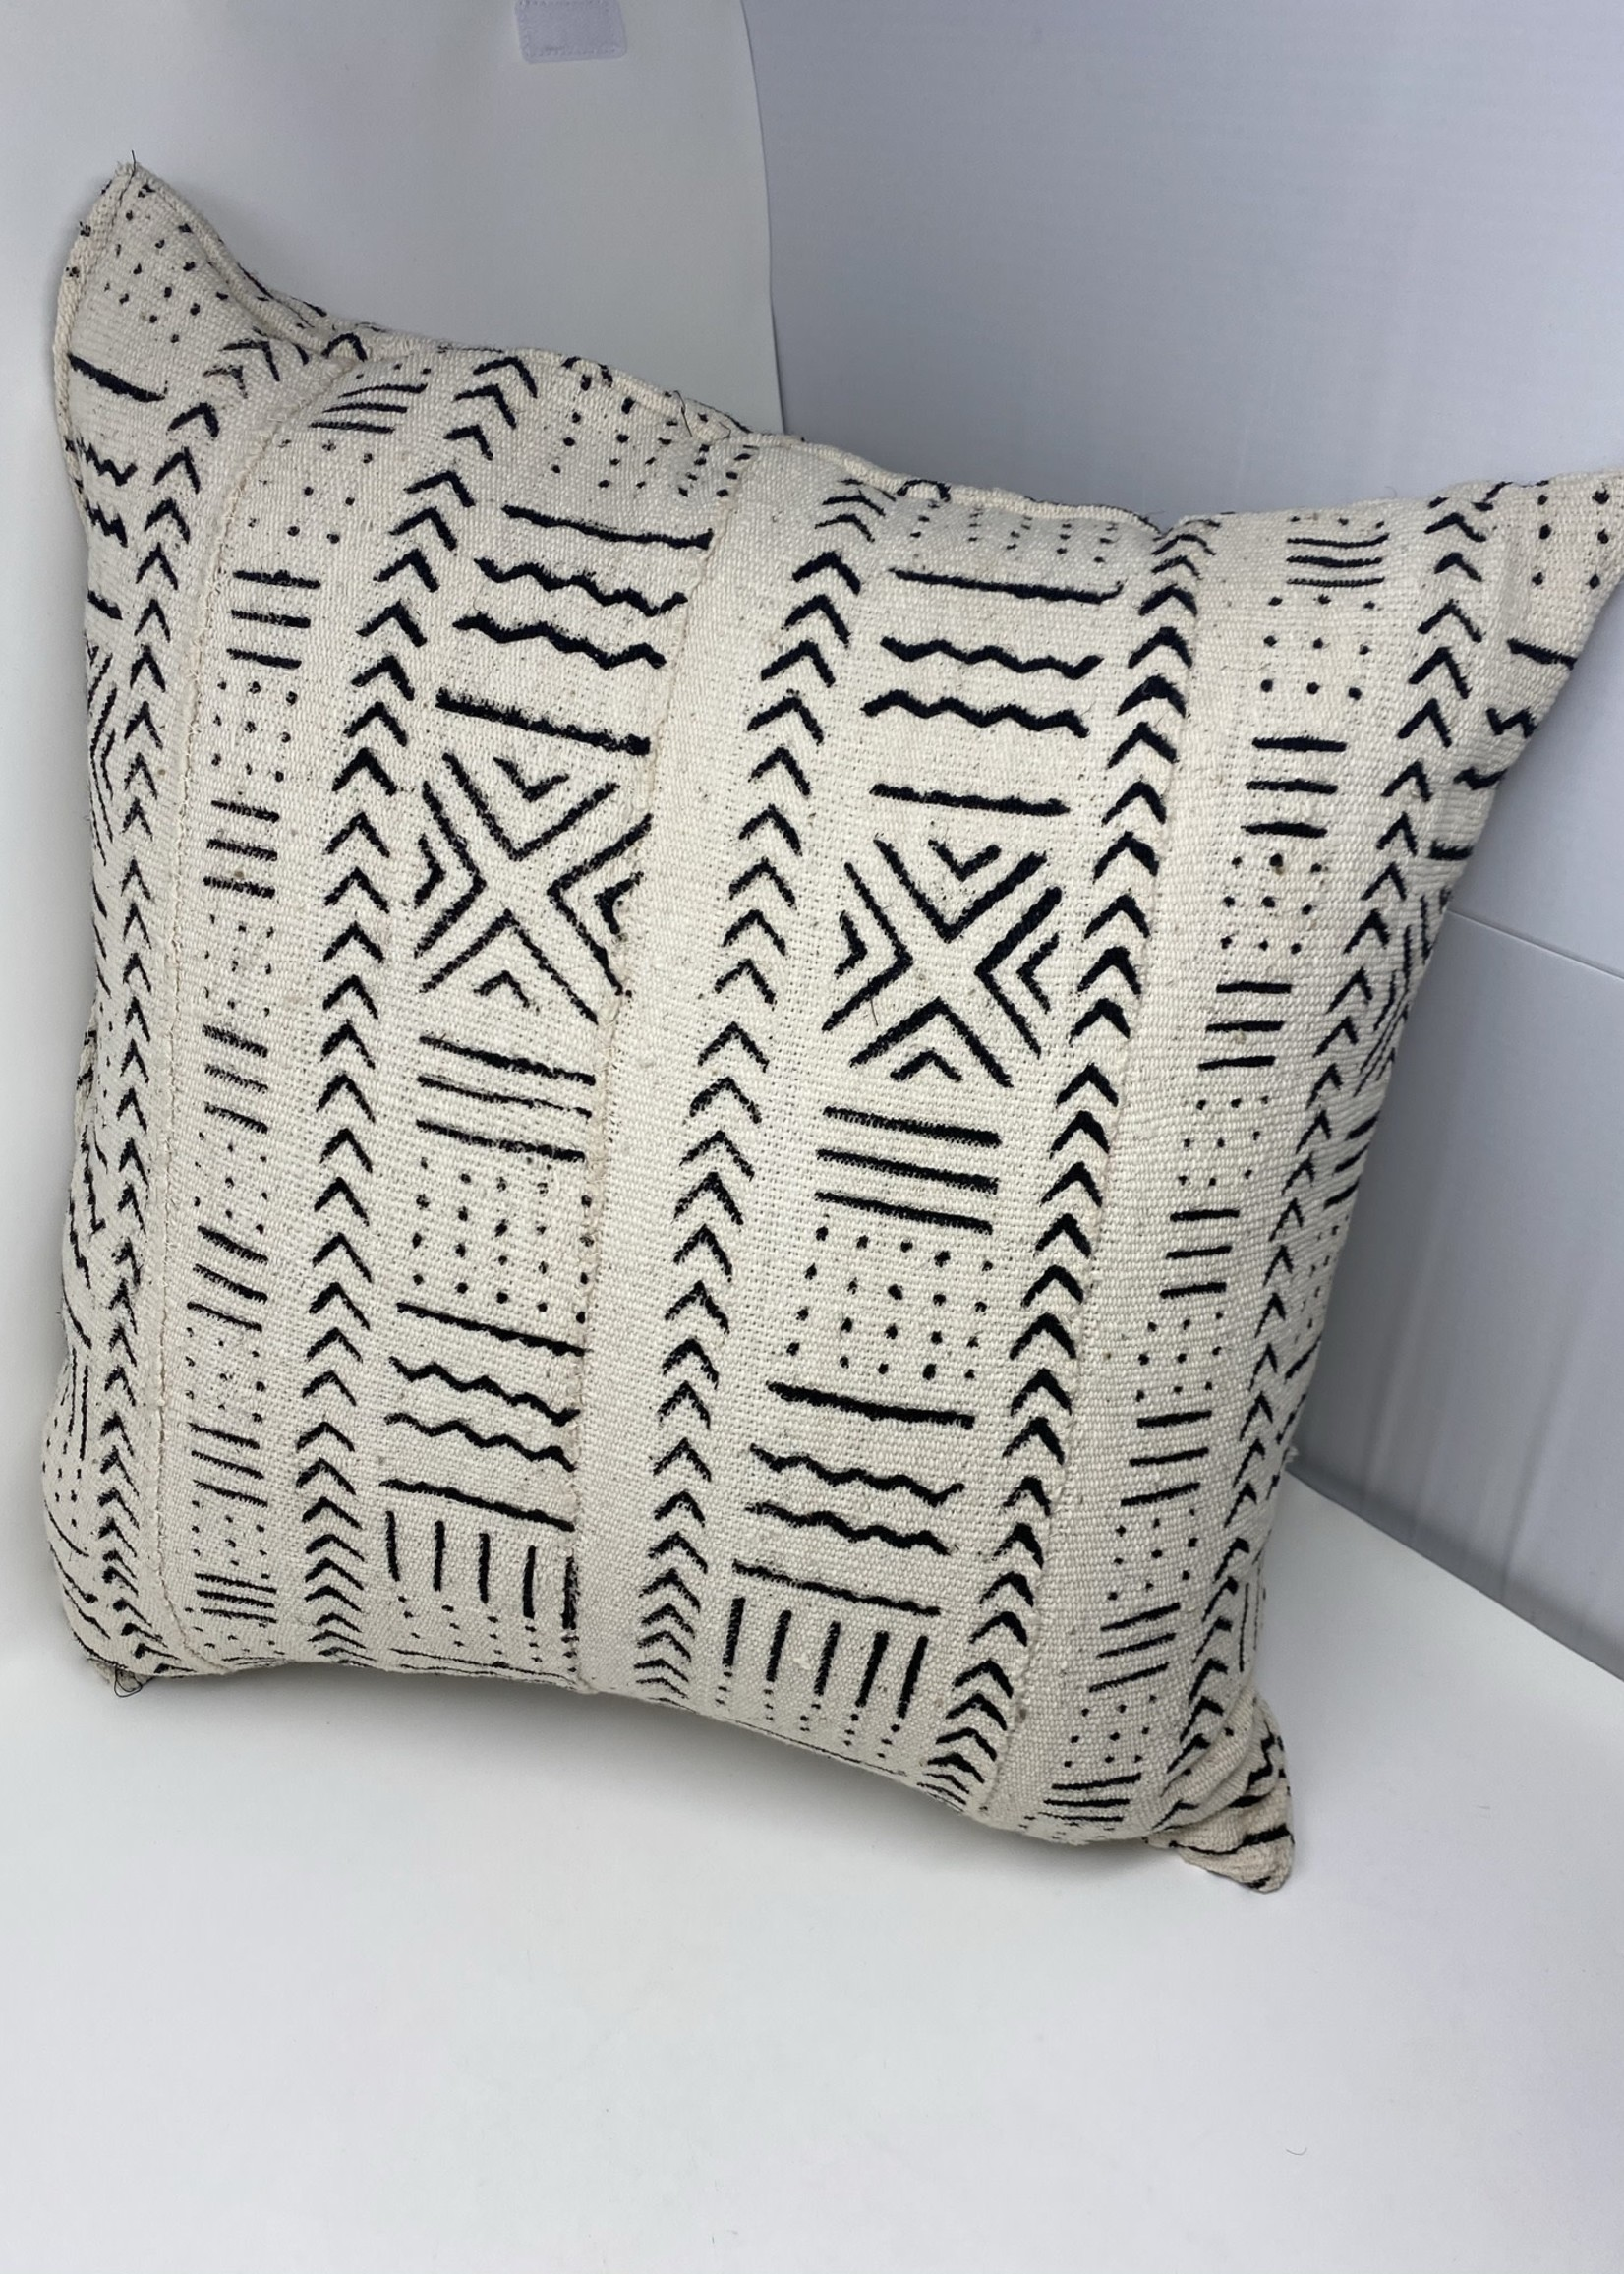 SKC MUDCLOTH THROW PILLOW (Single side)